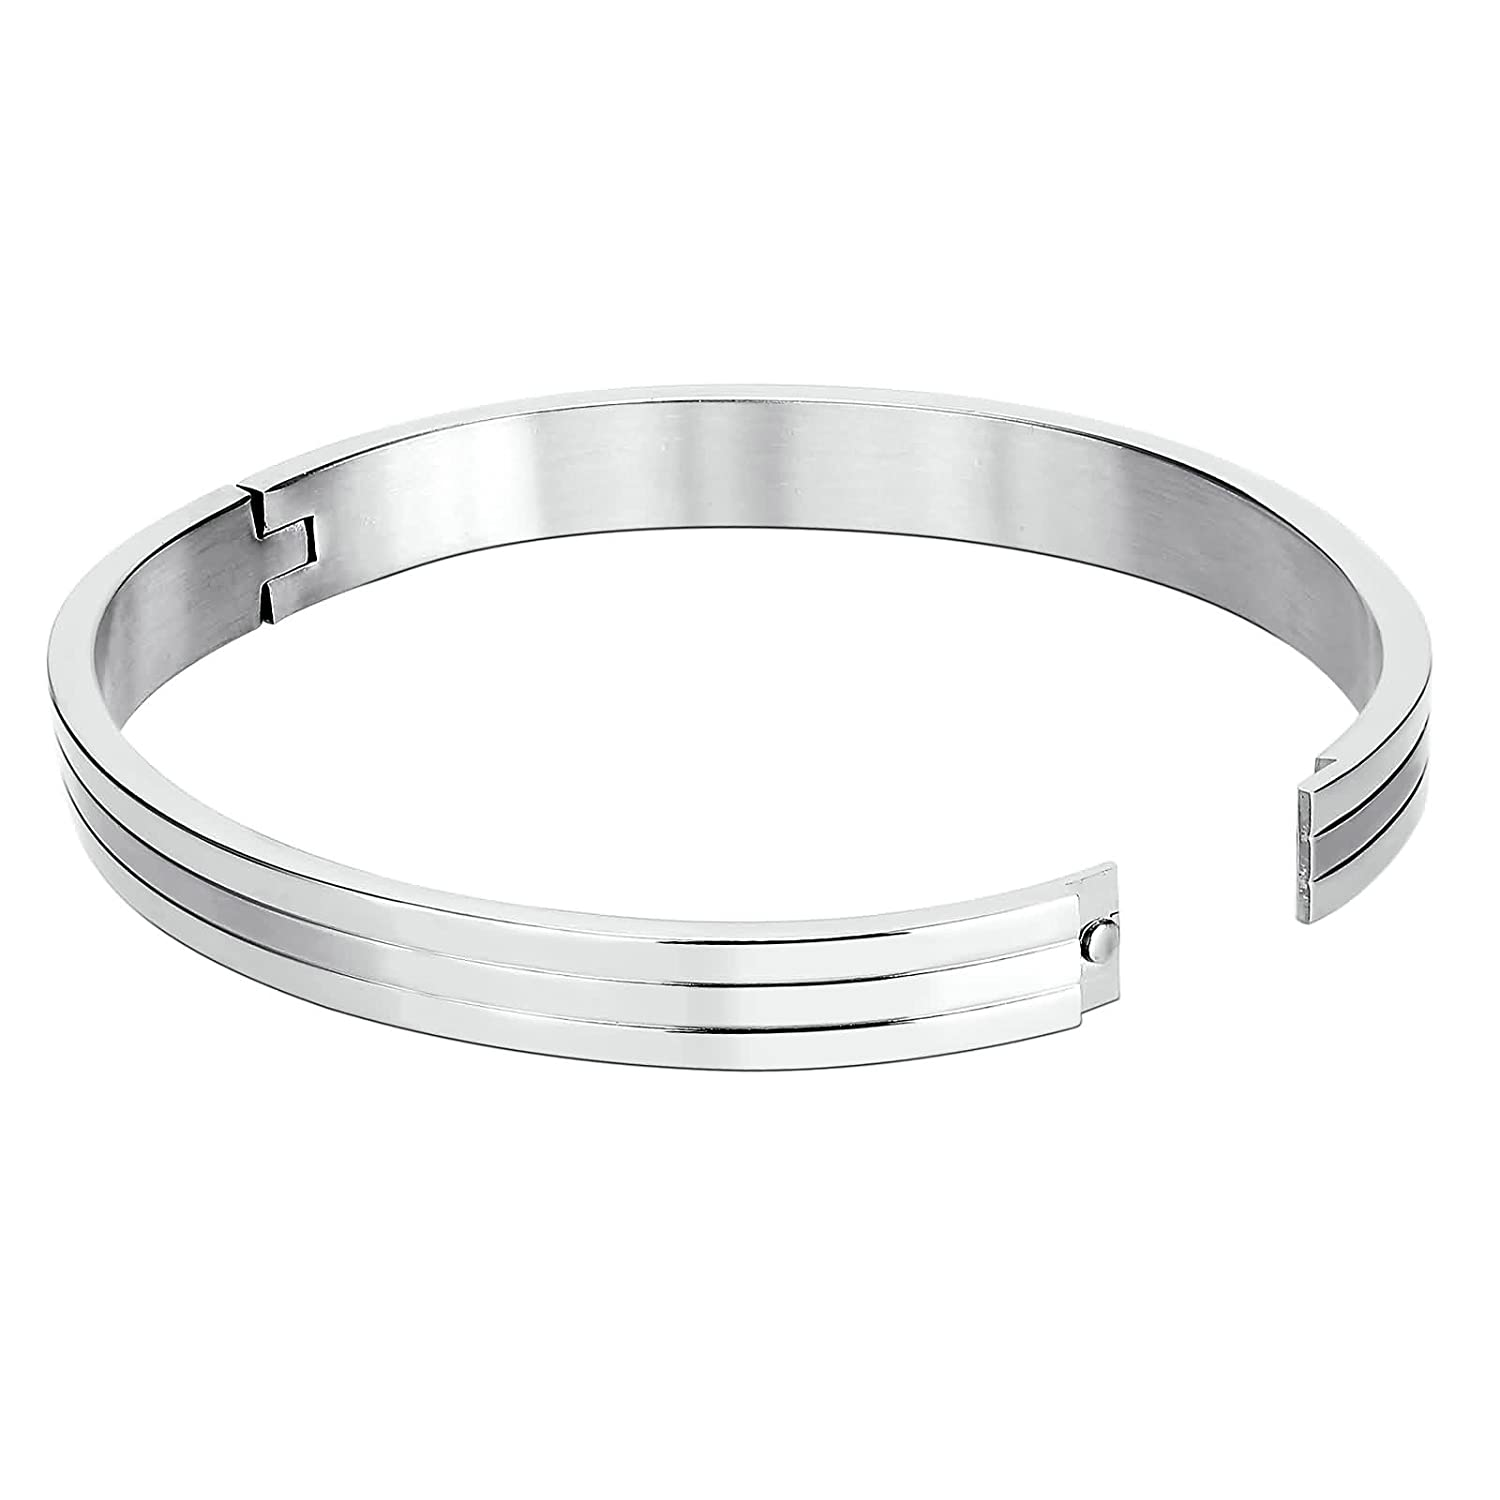 KnSam Cuff Bracelets for Womens Stainless Steel Triple Bar Silver